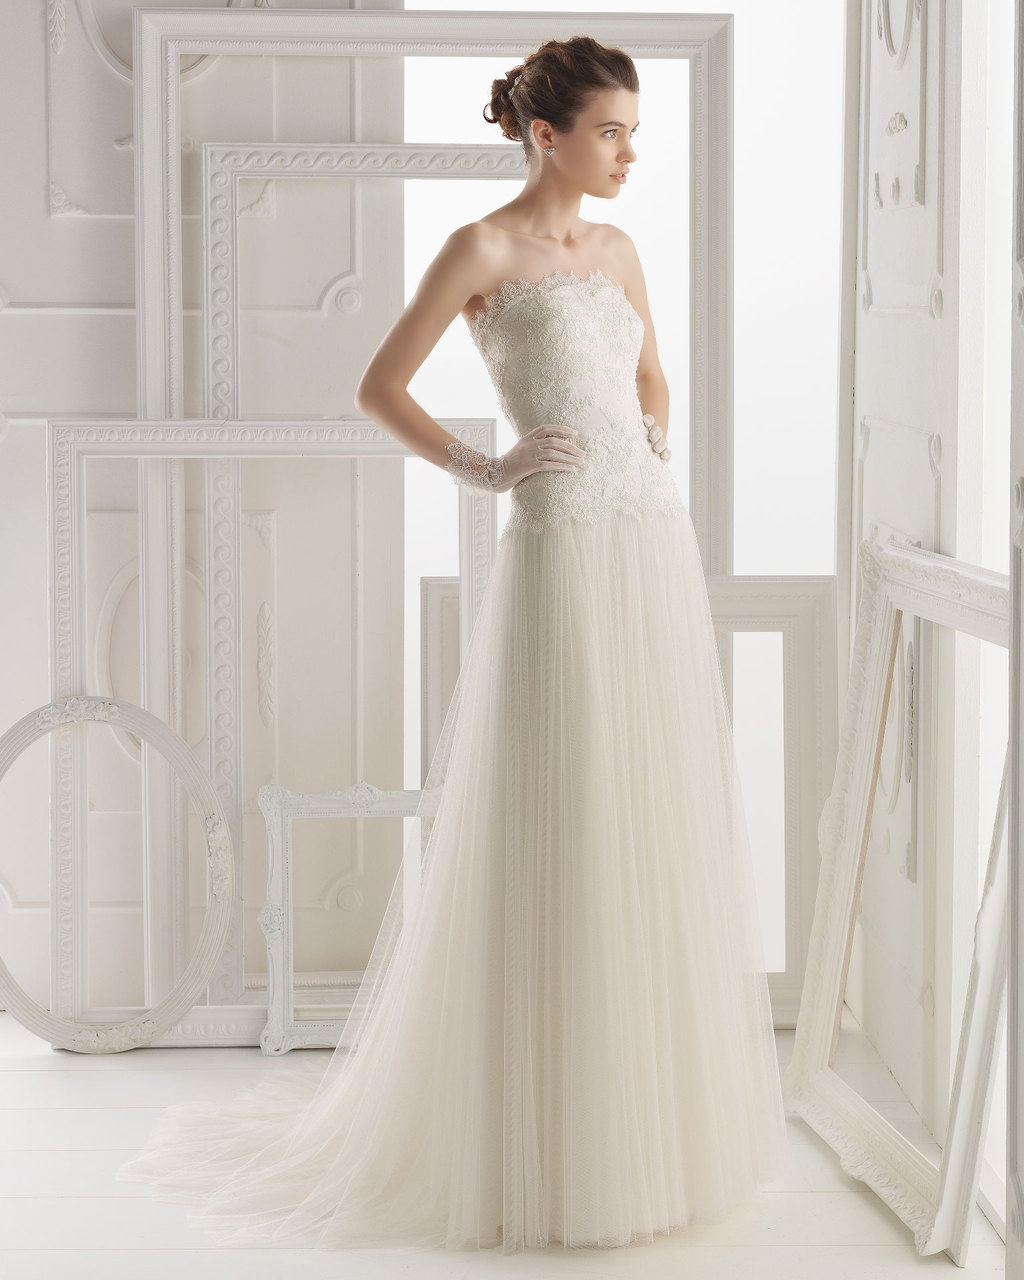 Aire-barcelona-wedding-dress-2014-bridal-obadia.full